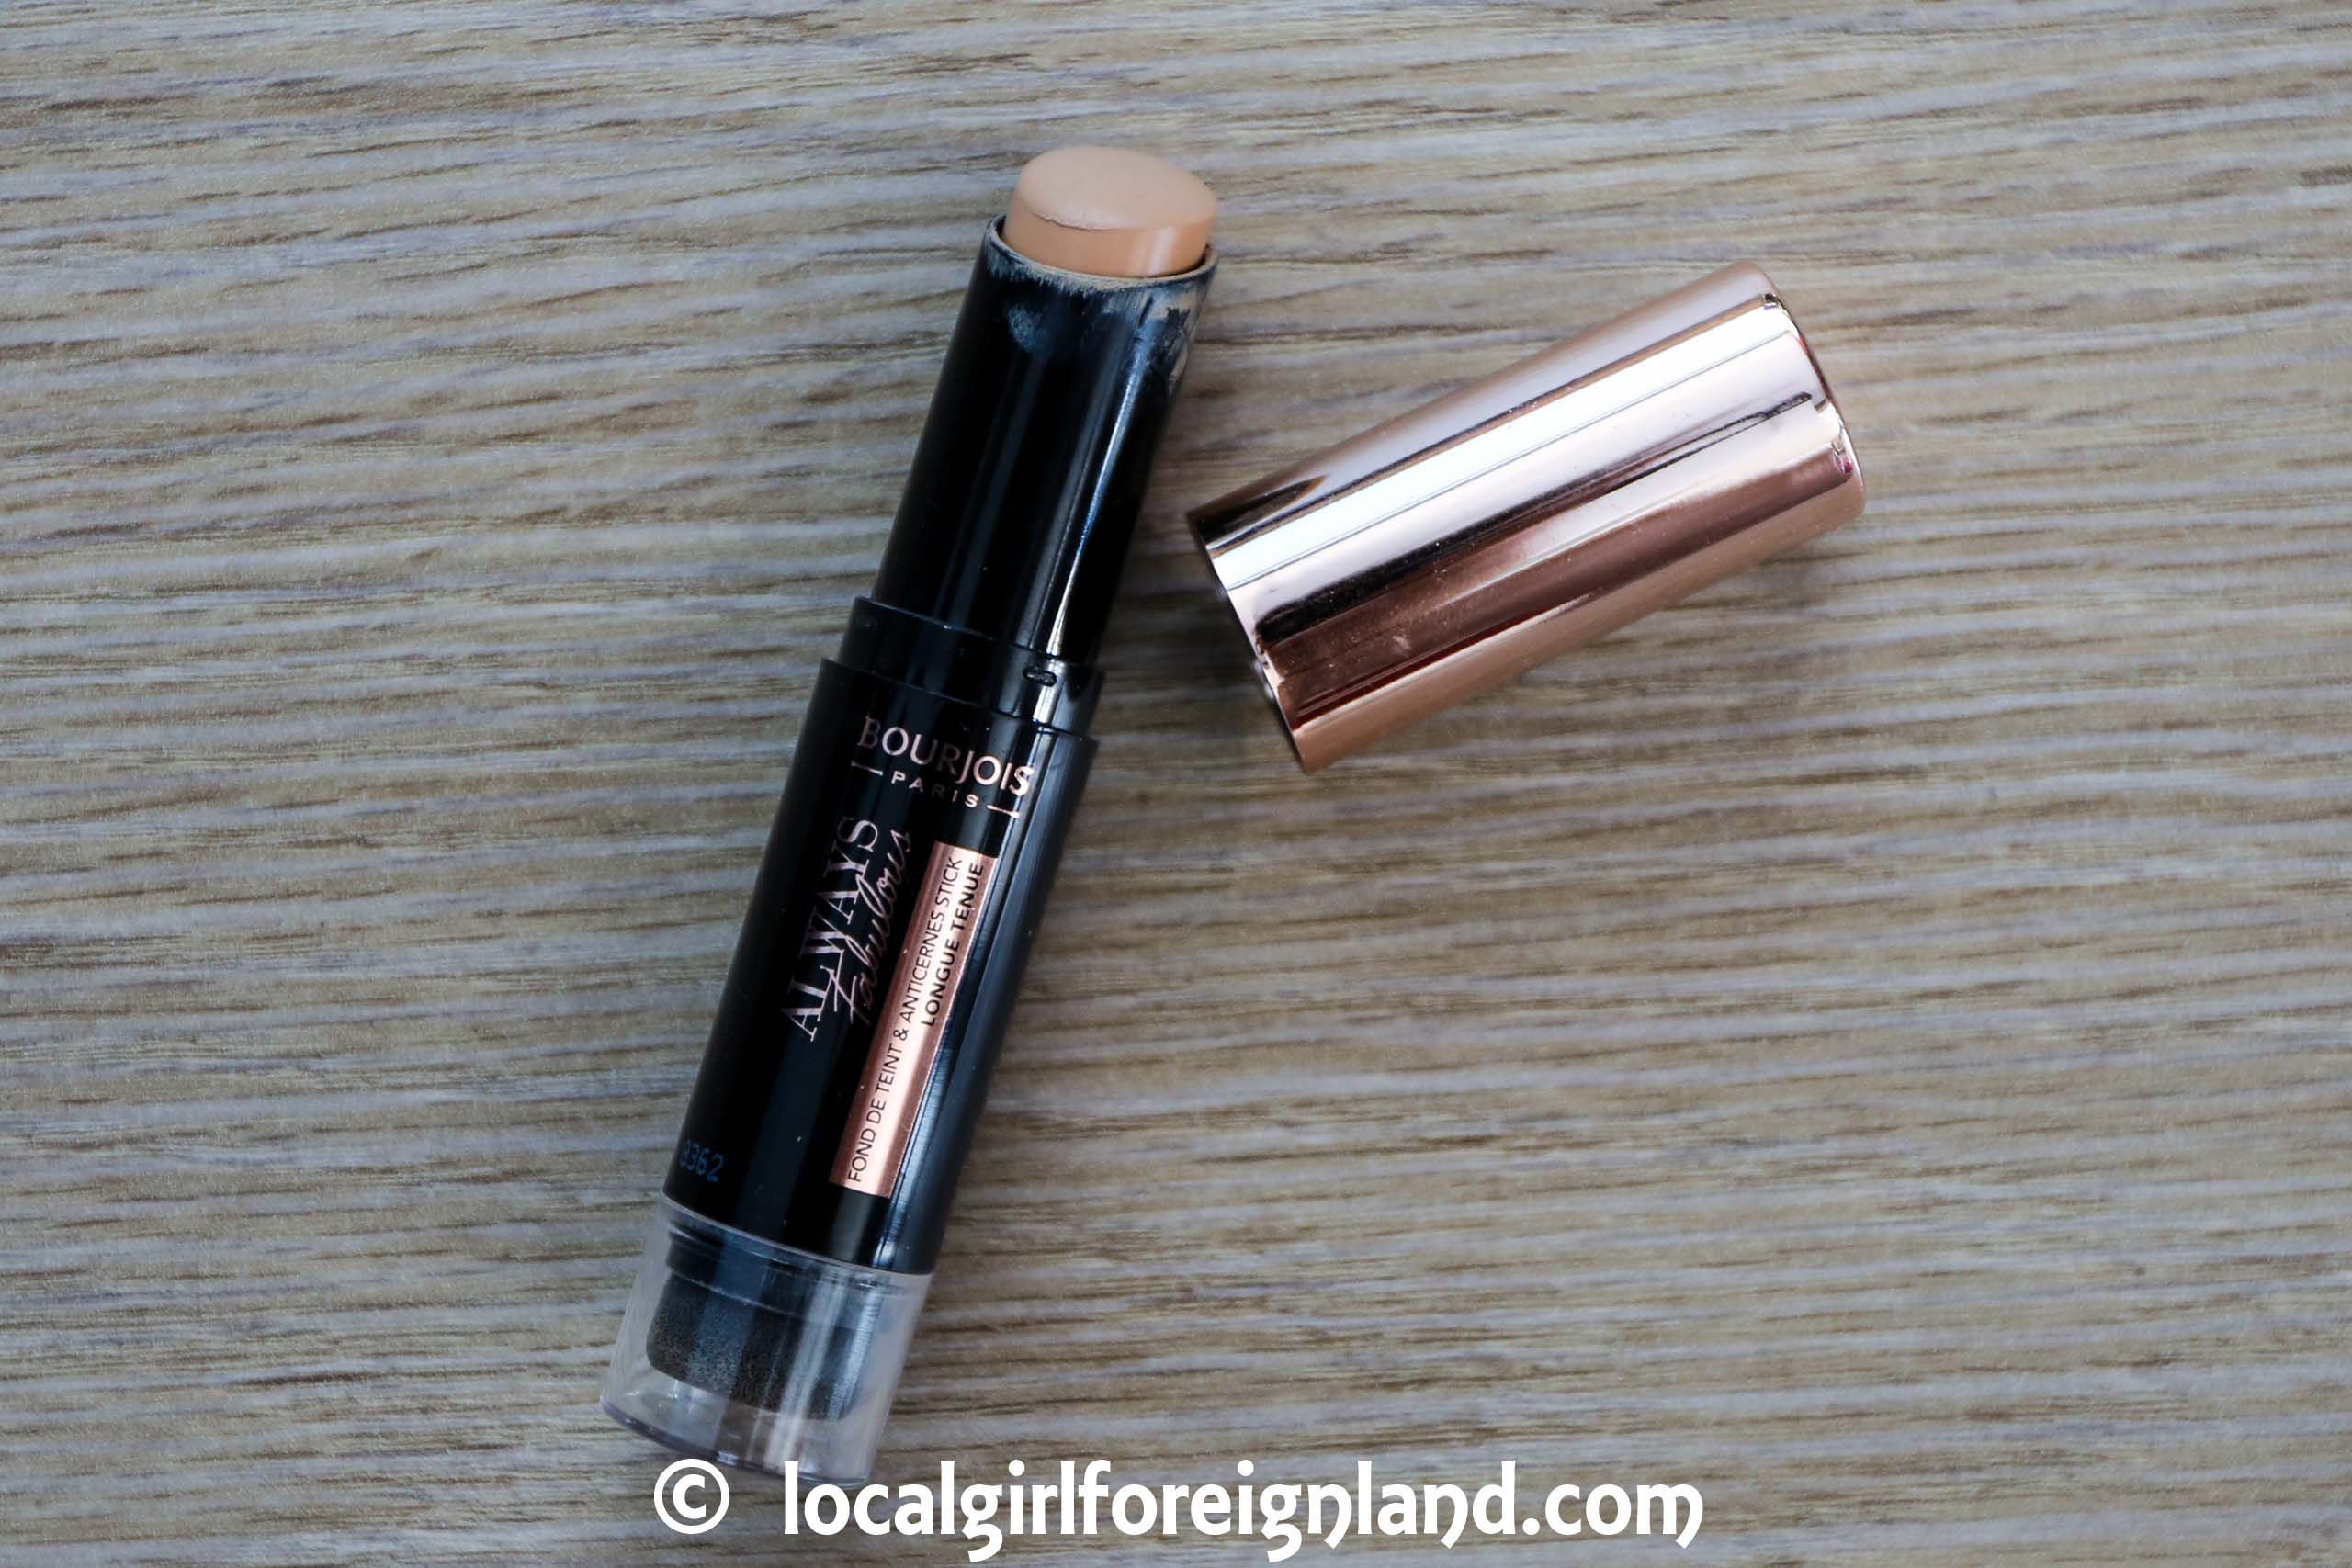 Bourjois Always Fabulous Foundcealer review